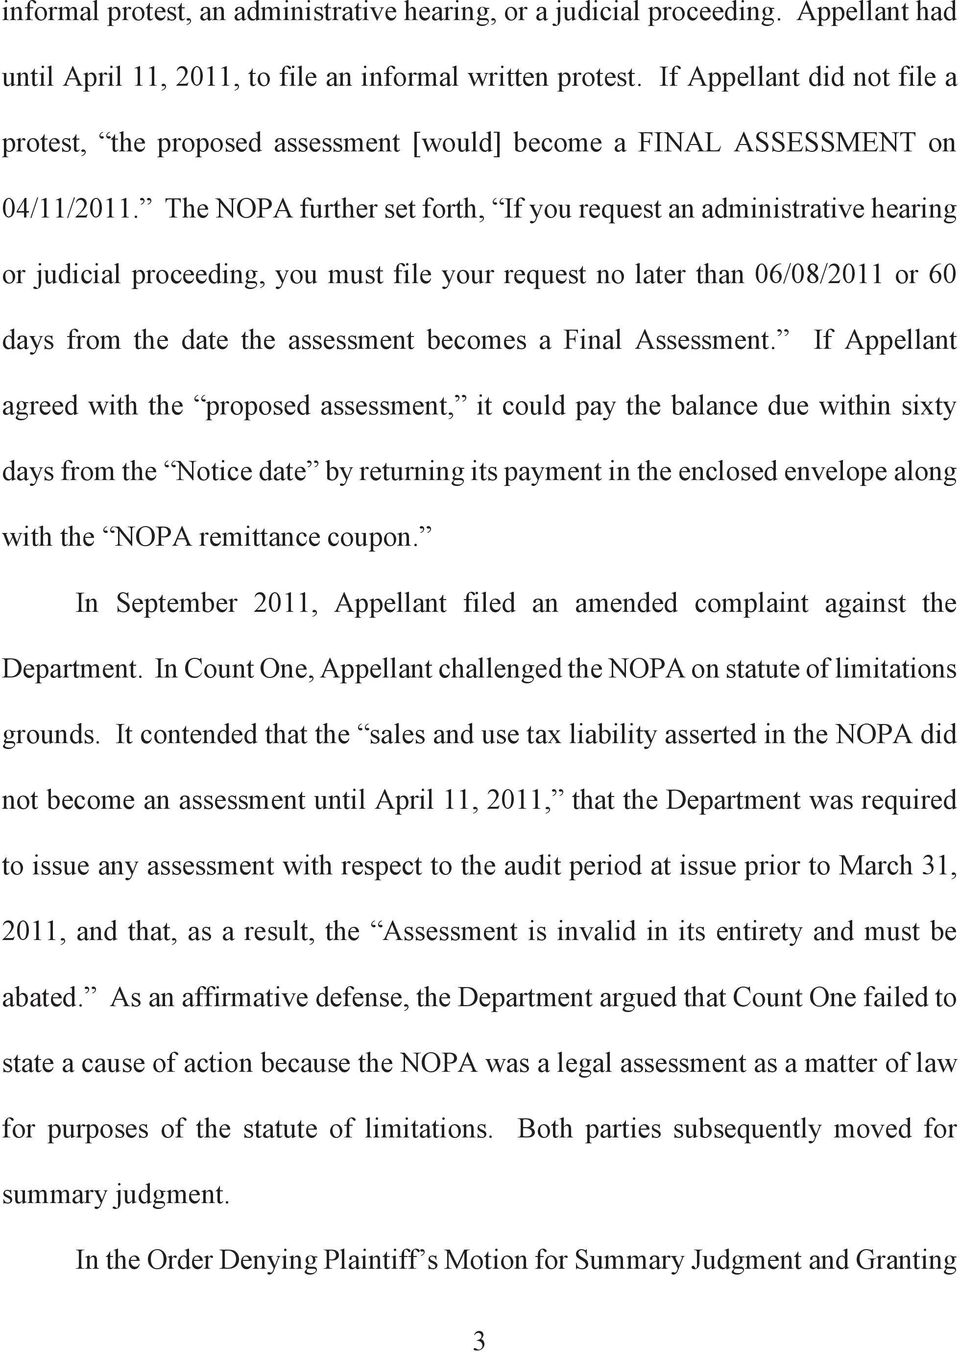 The NOPA further set forth, If you request an administrative hearing or judicial proceeding, you must file your request no later than 06/08/2011 or 60 days from the date the assessment becomes a